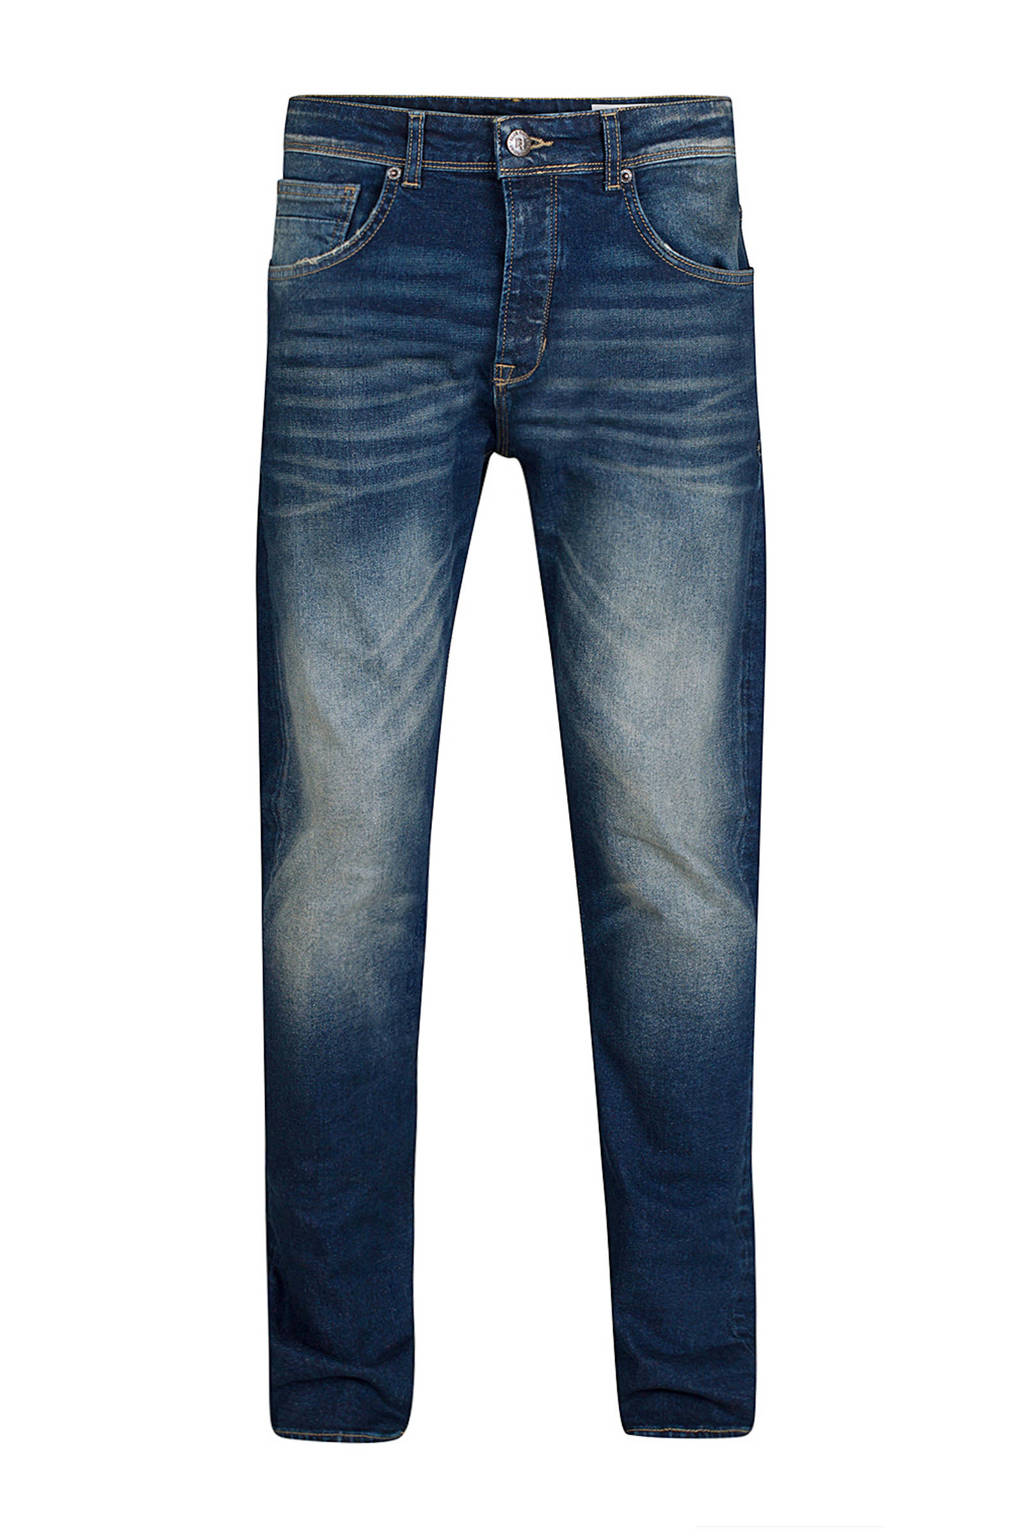 WE Fashion Blue Ridge relaxed tapered comfort stretch jeans, Used denim